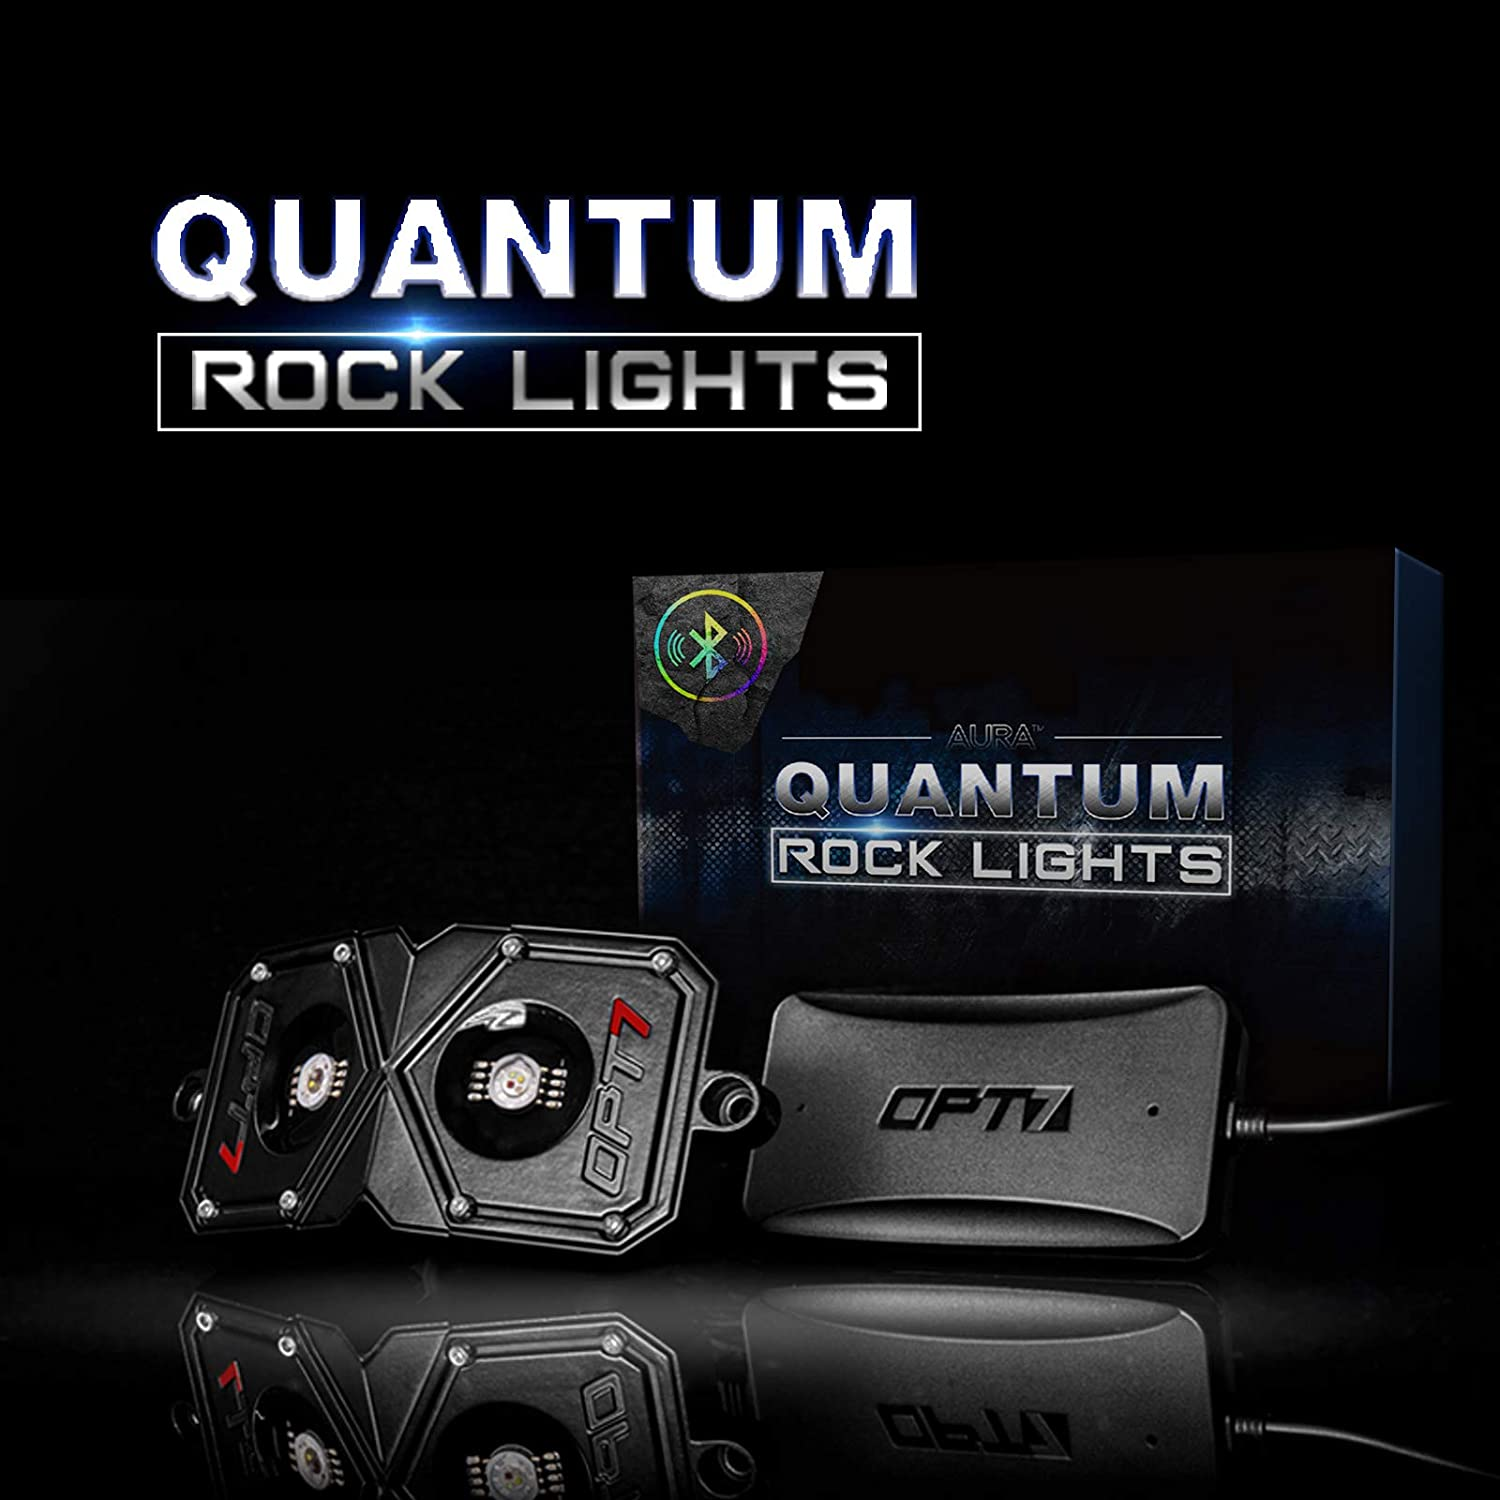 OPT7 Quantum Pro 4pc Rock RGBW Multicolor with Bluetooth Controller-Dimmer Strobe Fade IP67 Waterproof Pods Off Road Crawling Climbing Neon LED Light Kit